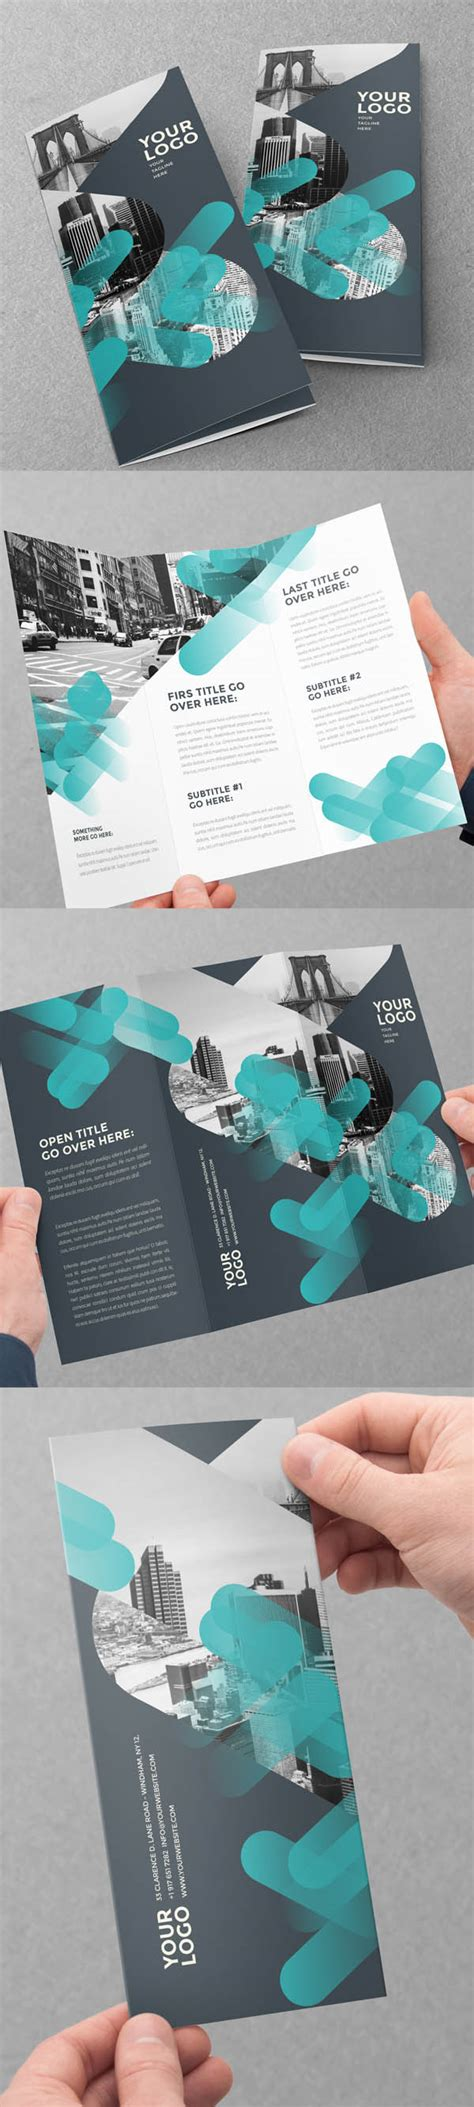 brochure designs best 10 best corporate business brochure designs for